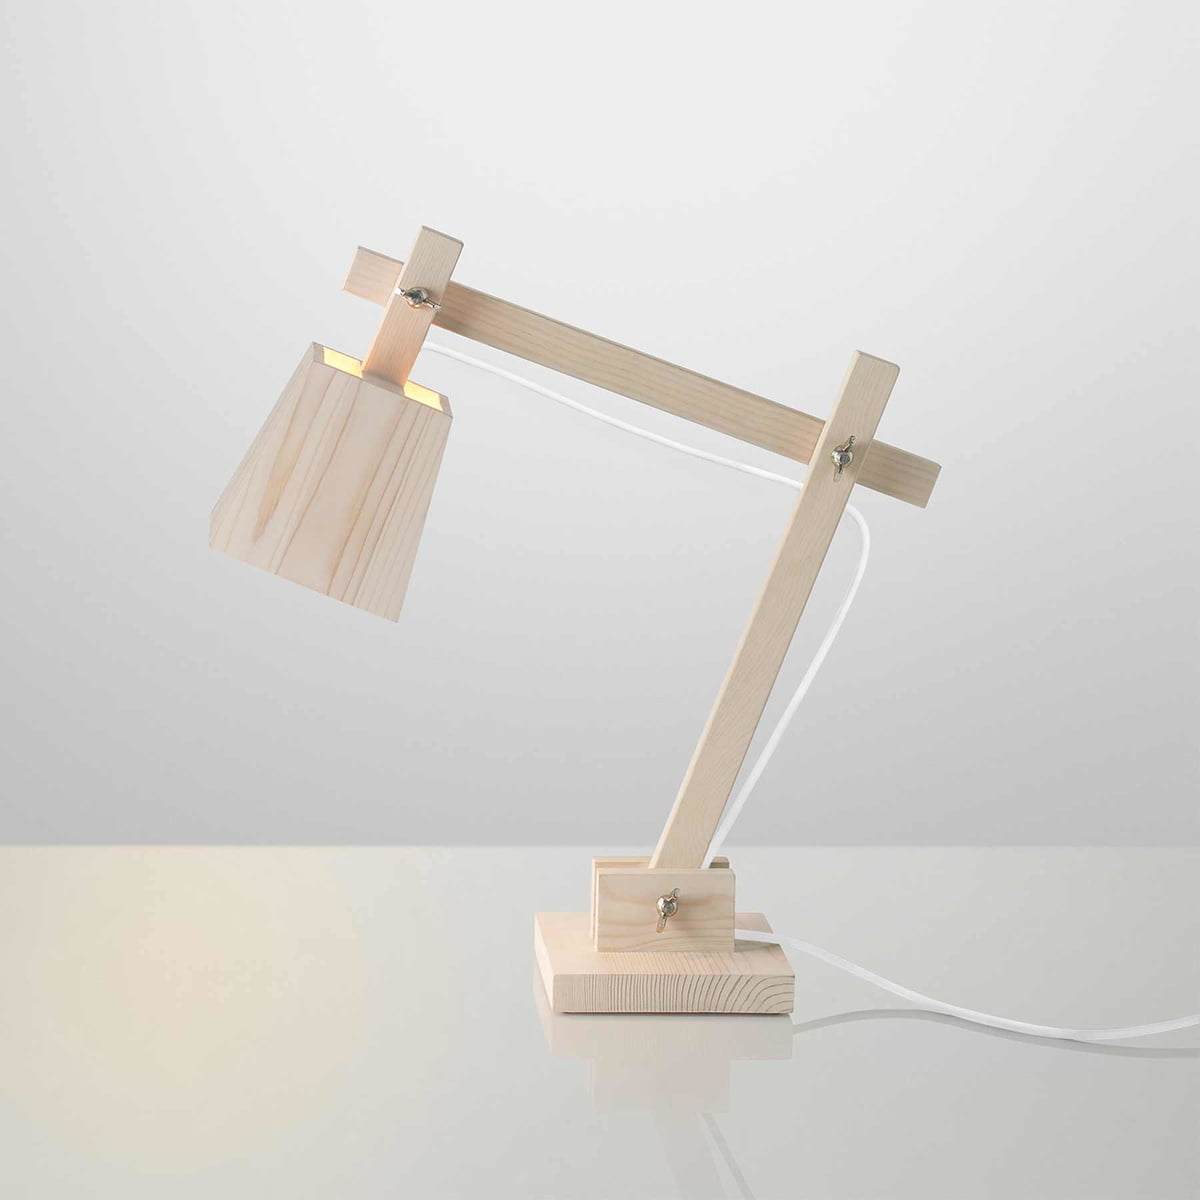 Wood Lamp by Muuto in our shop